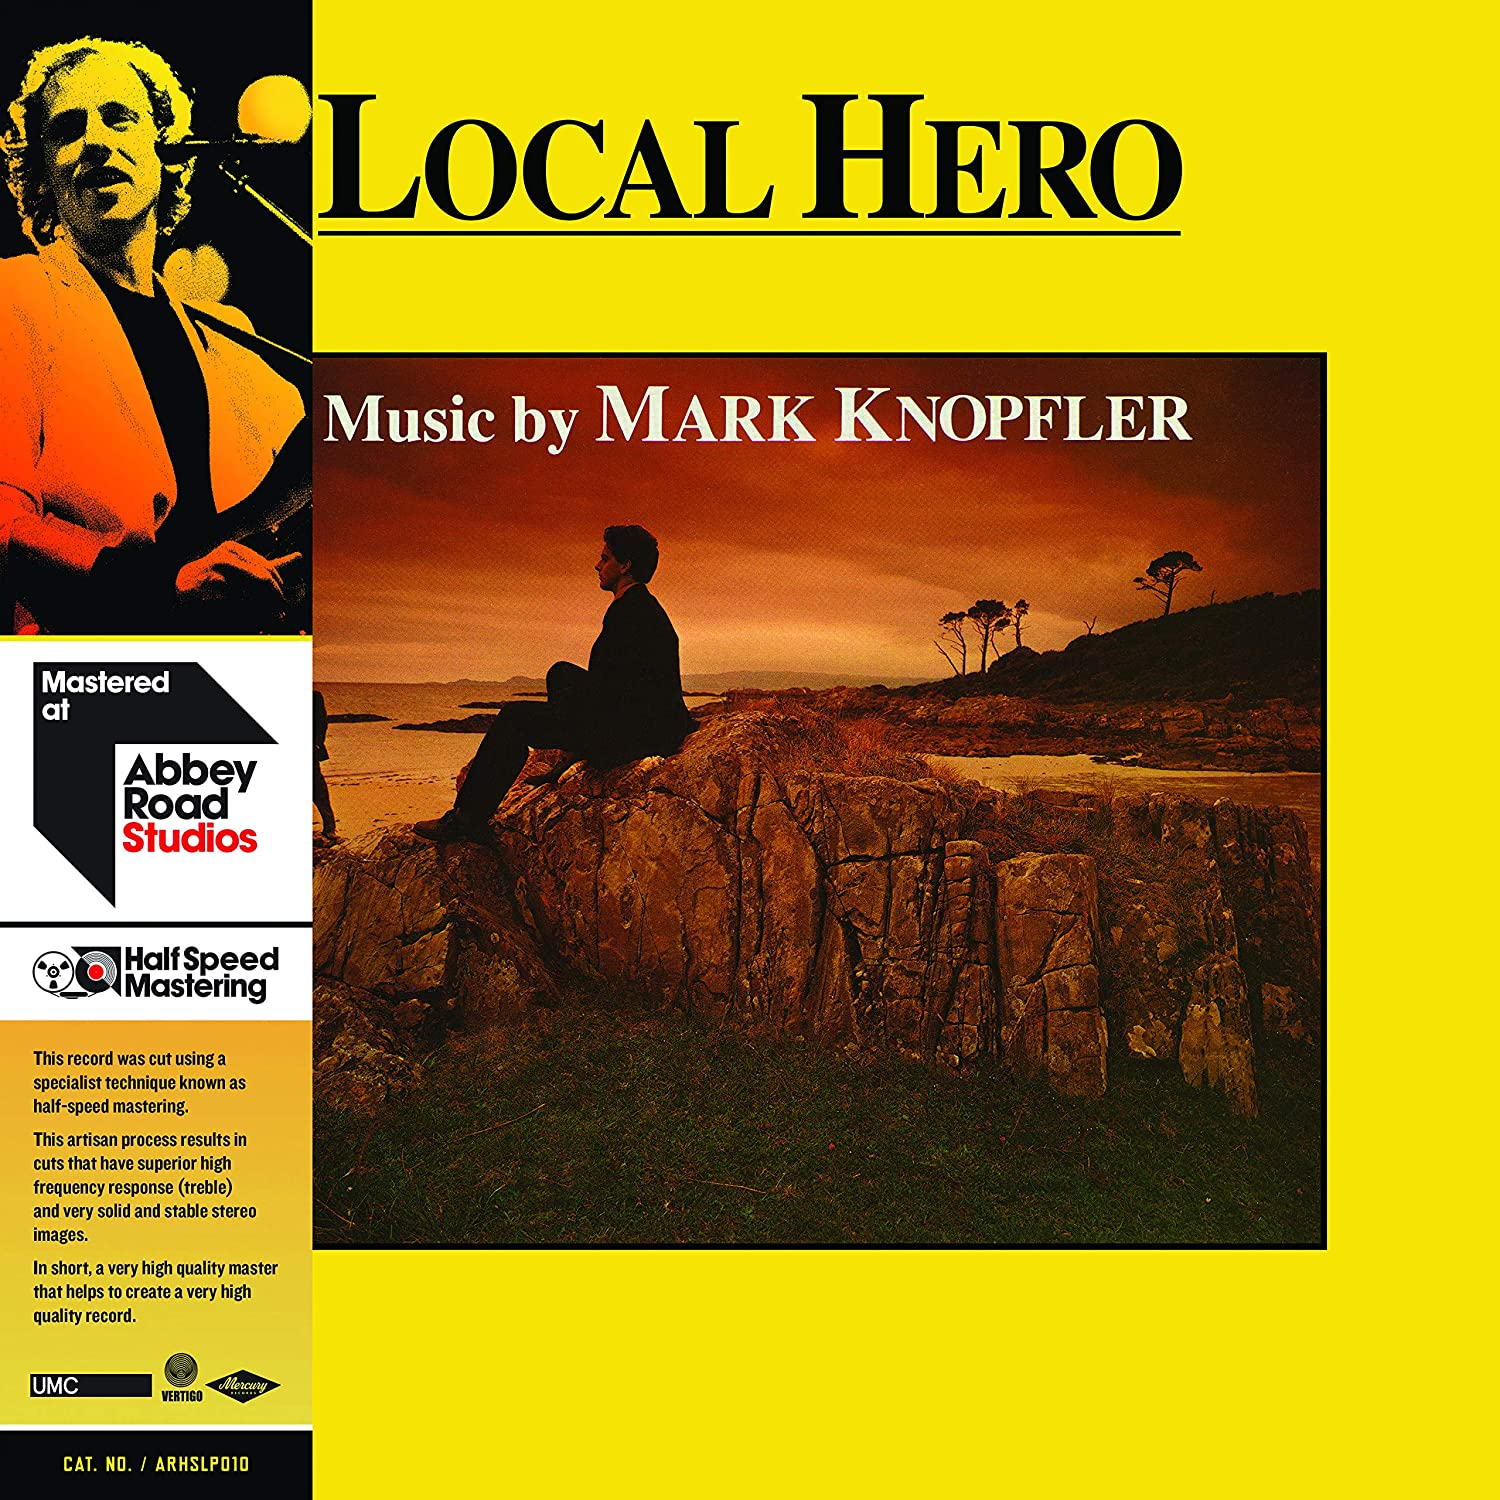 Copertina Vinile 33 giri Local Hero [Soundtrack LP] di Mark Knopfler